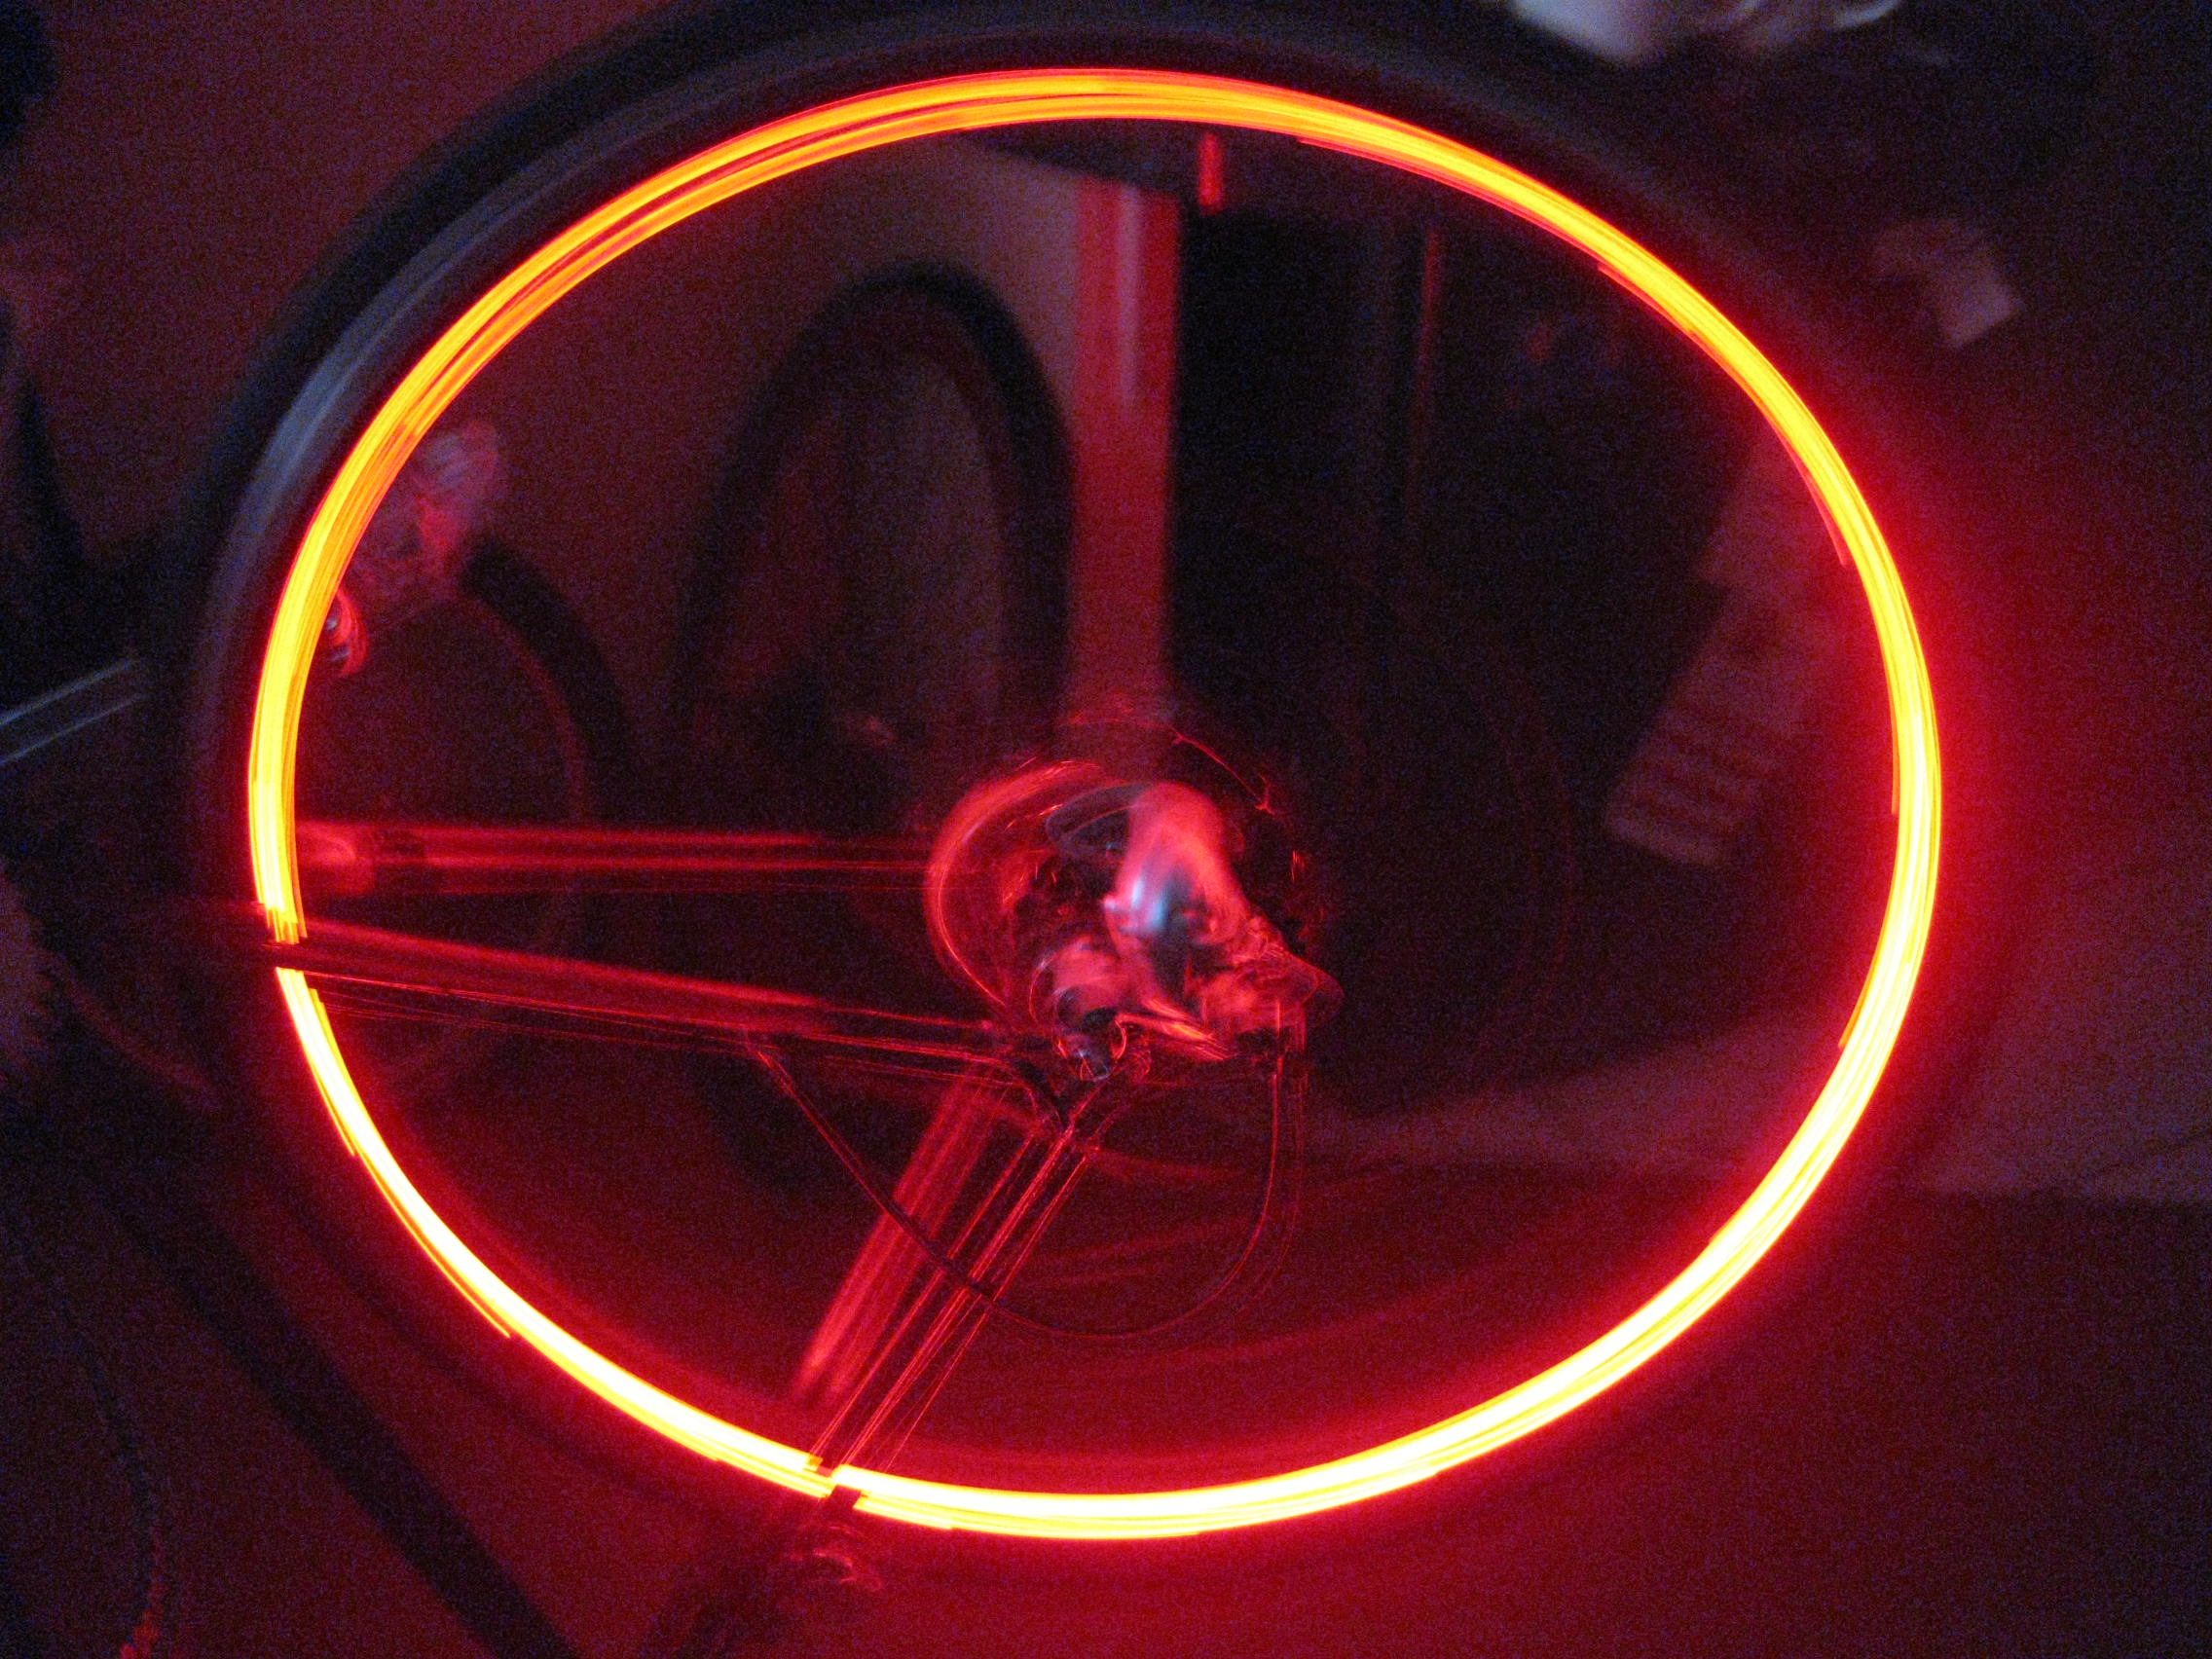 Embedded Bike Rim Lights